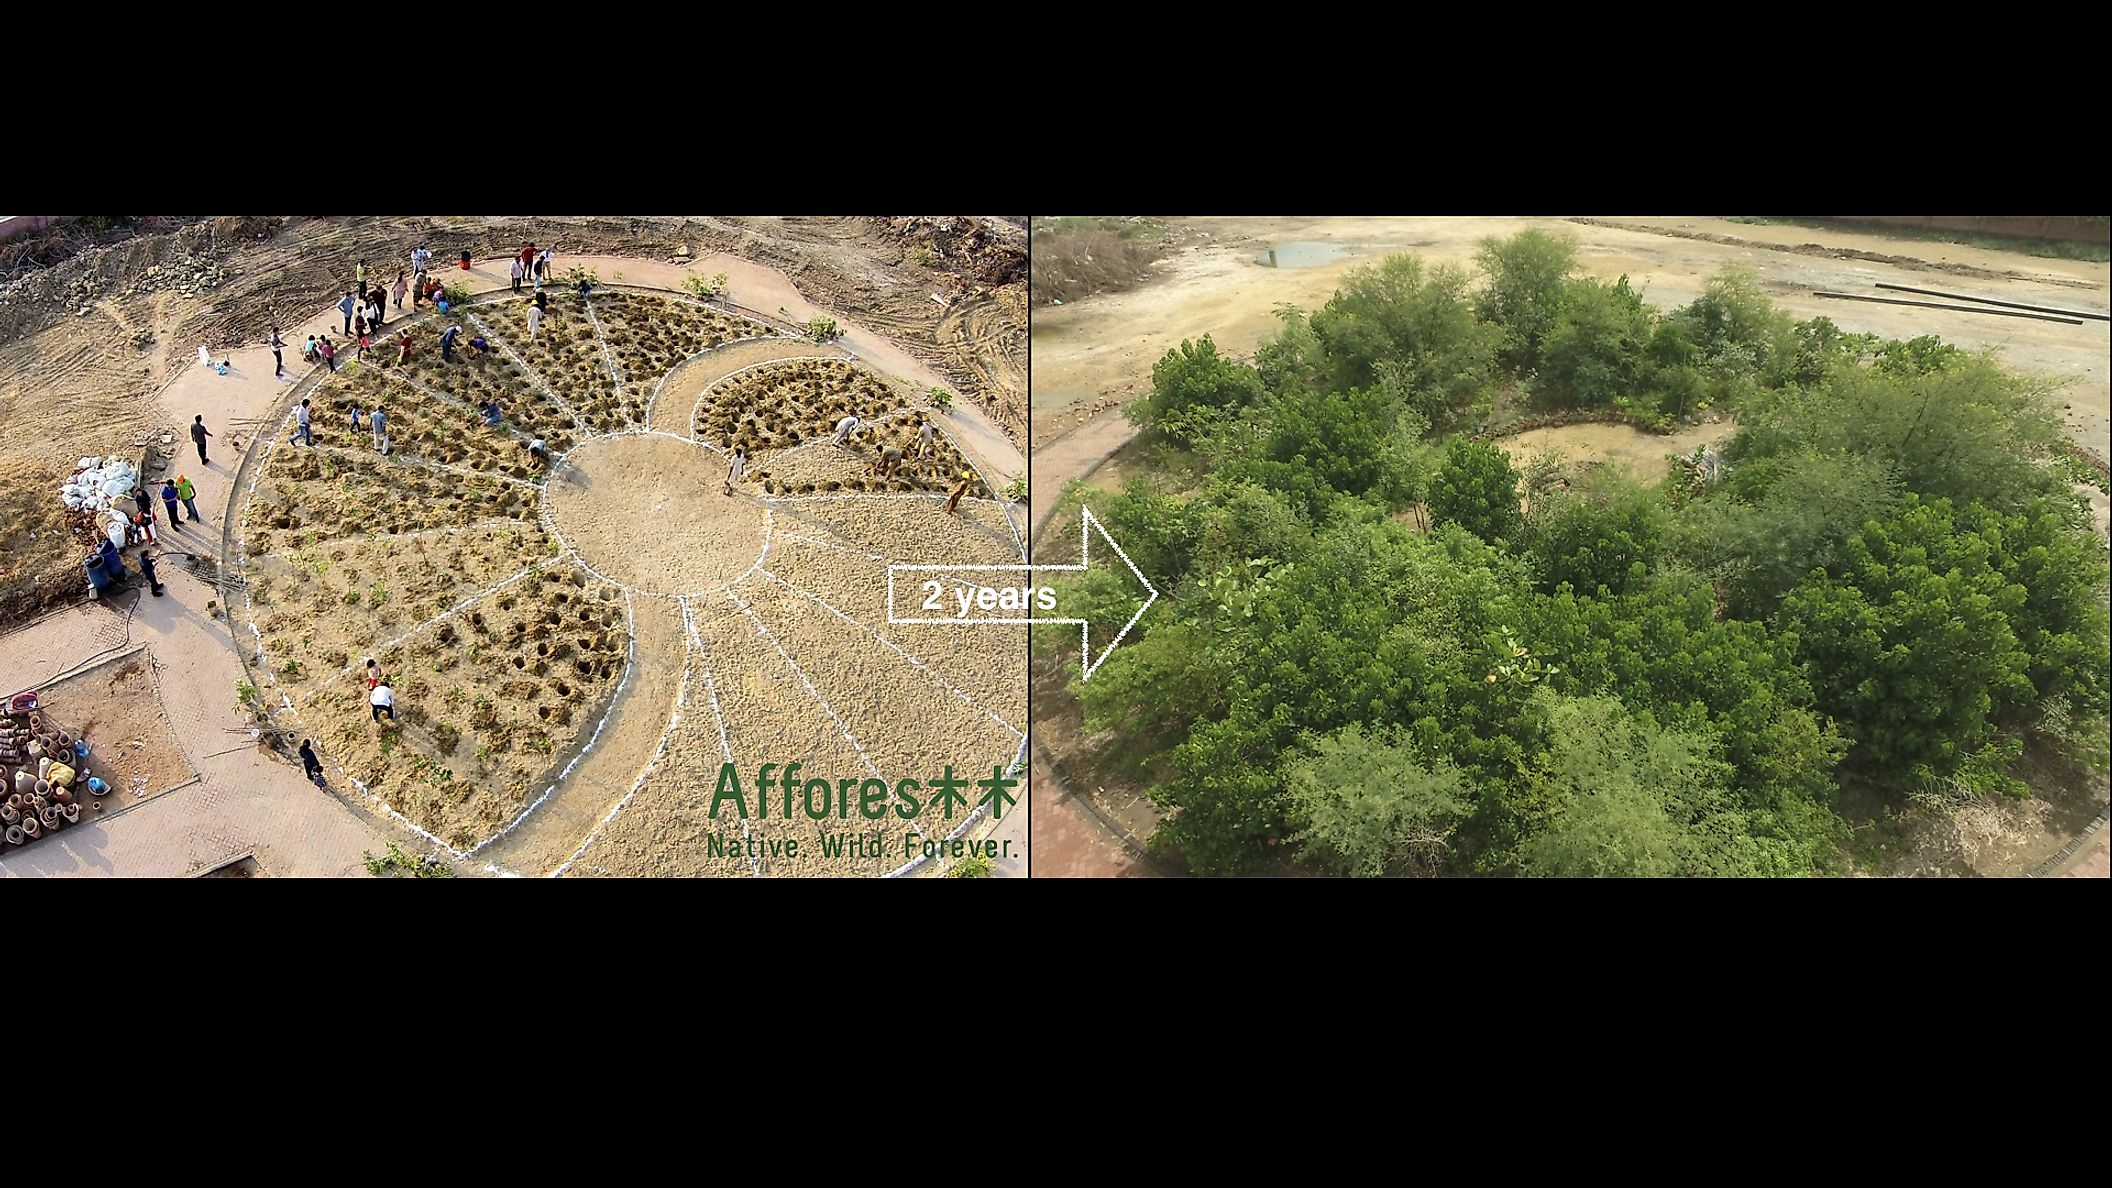 Transformation of Clifton Park, Pakistan (Before and After) by Afforestt. Credit_urbanforest.pk